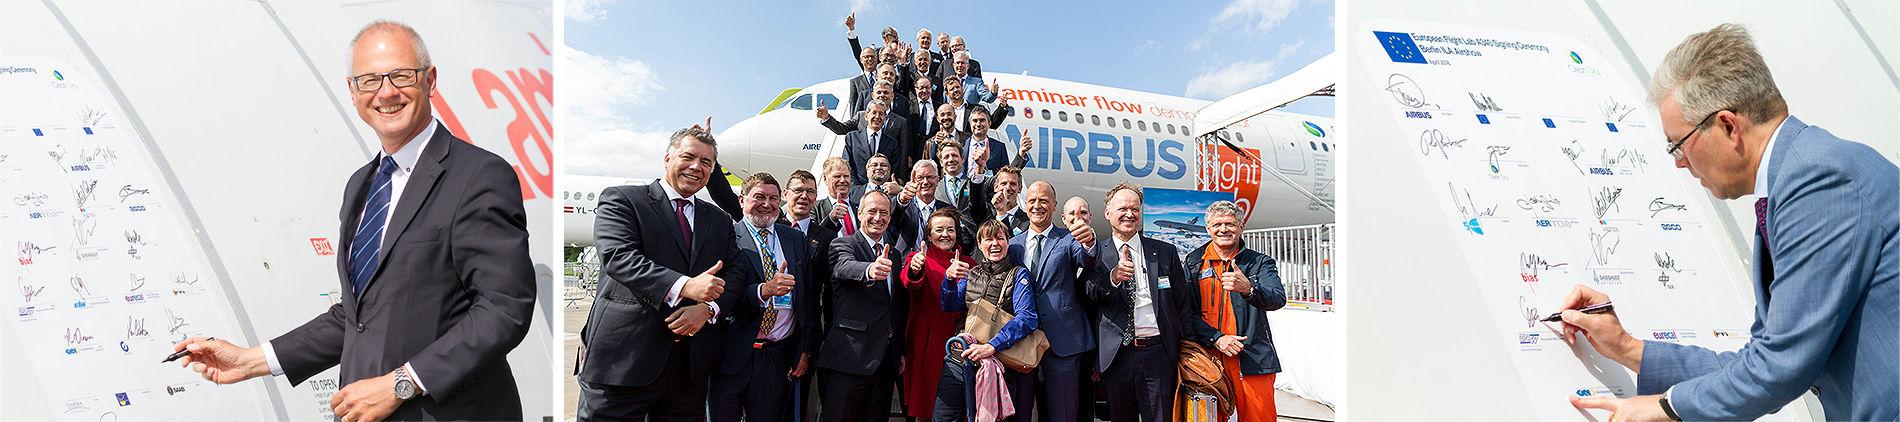 Airbus BLADE Ceremony at ILA Berlin 2018